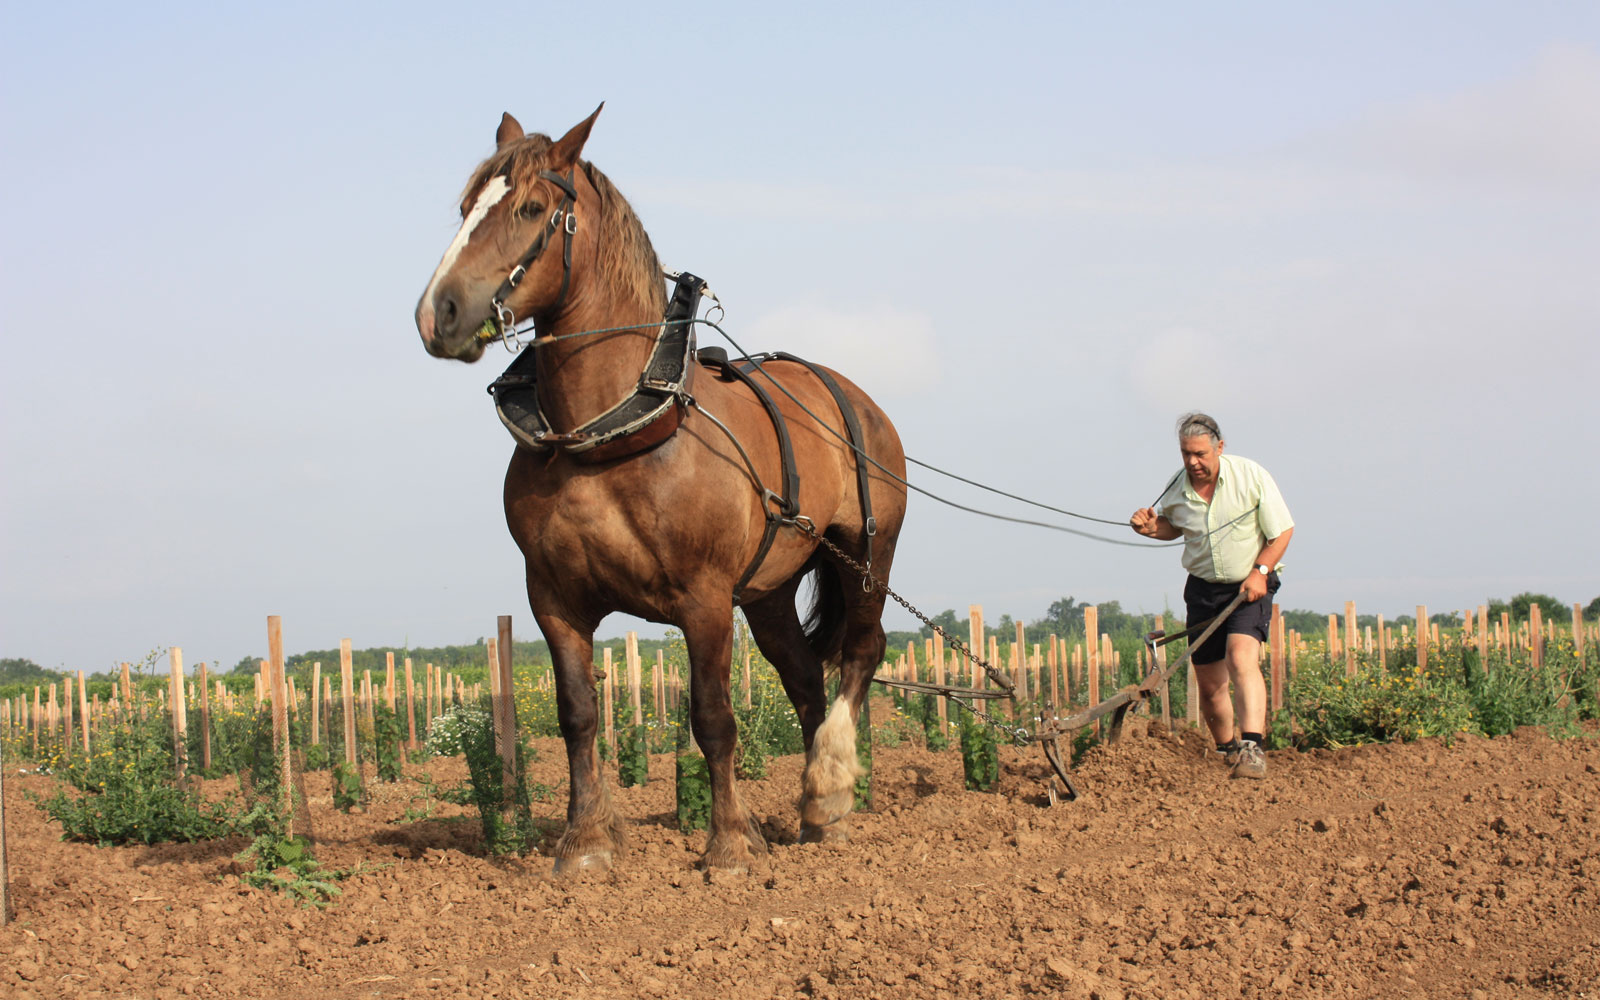 Chevalier with horse-drawn plough